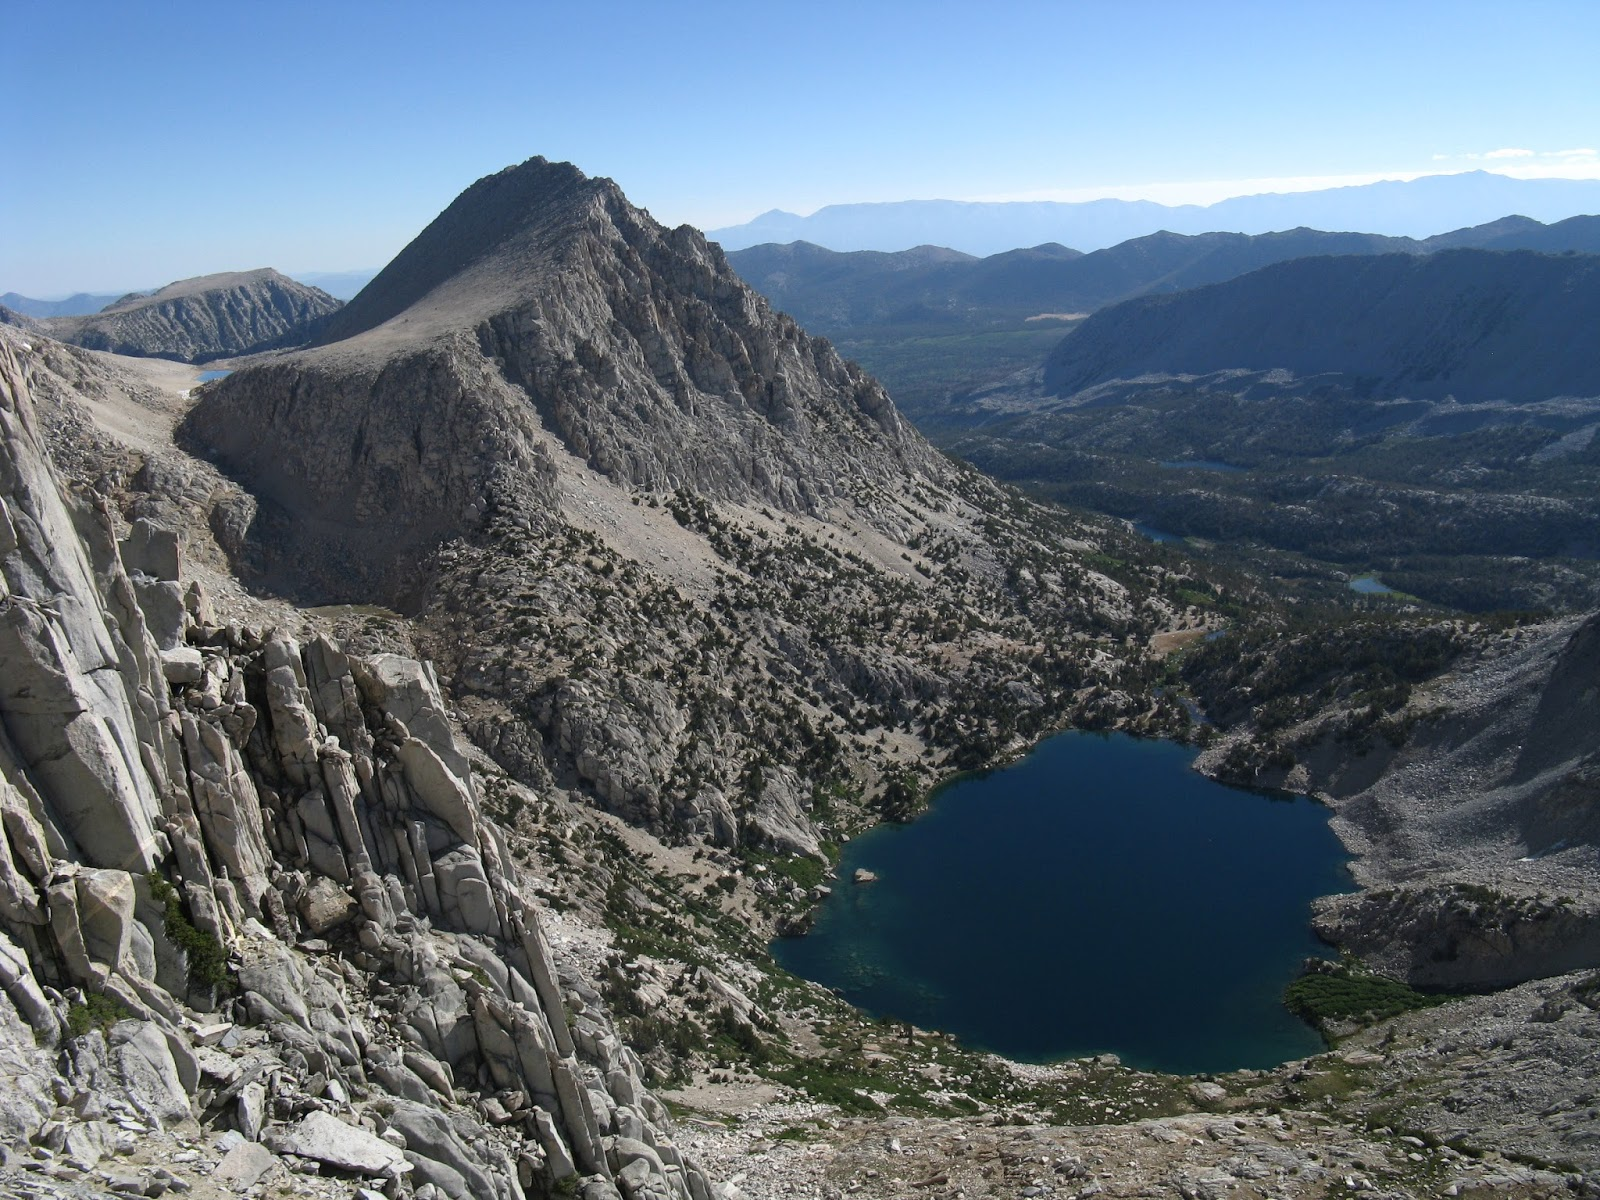 Mt. Starr and Ruby Lake